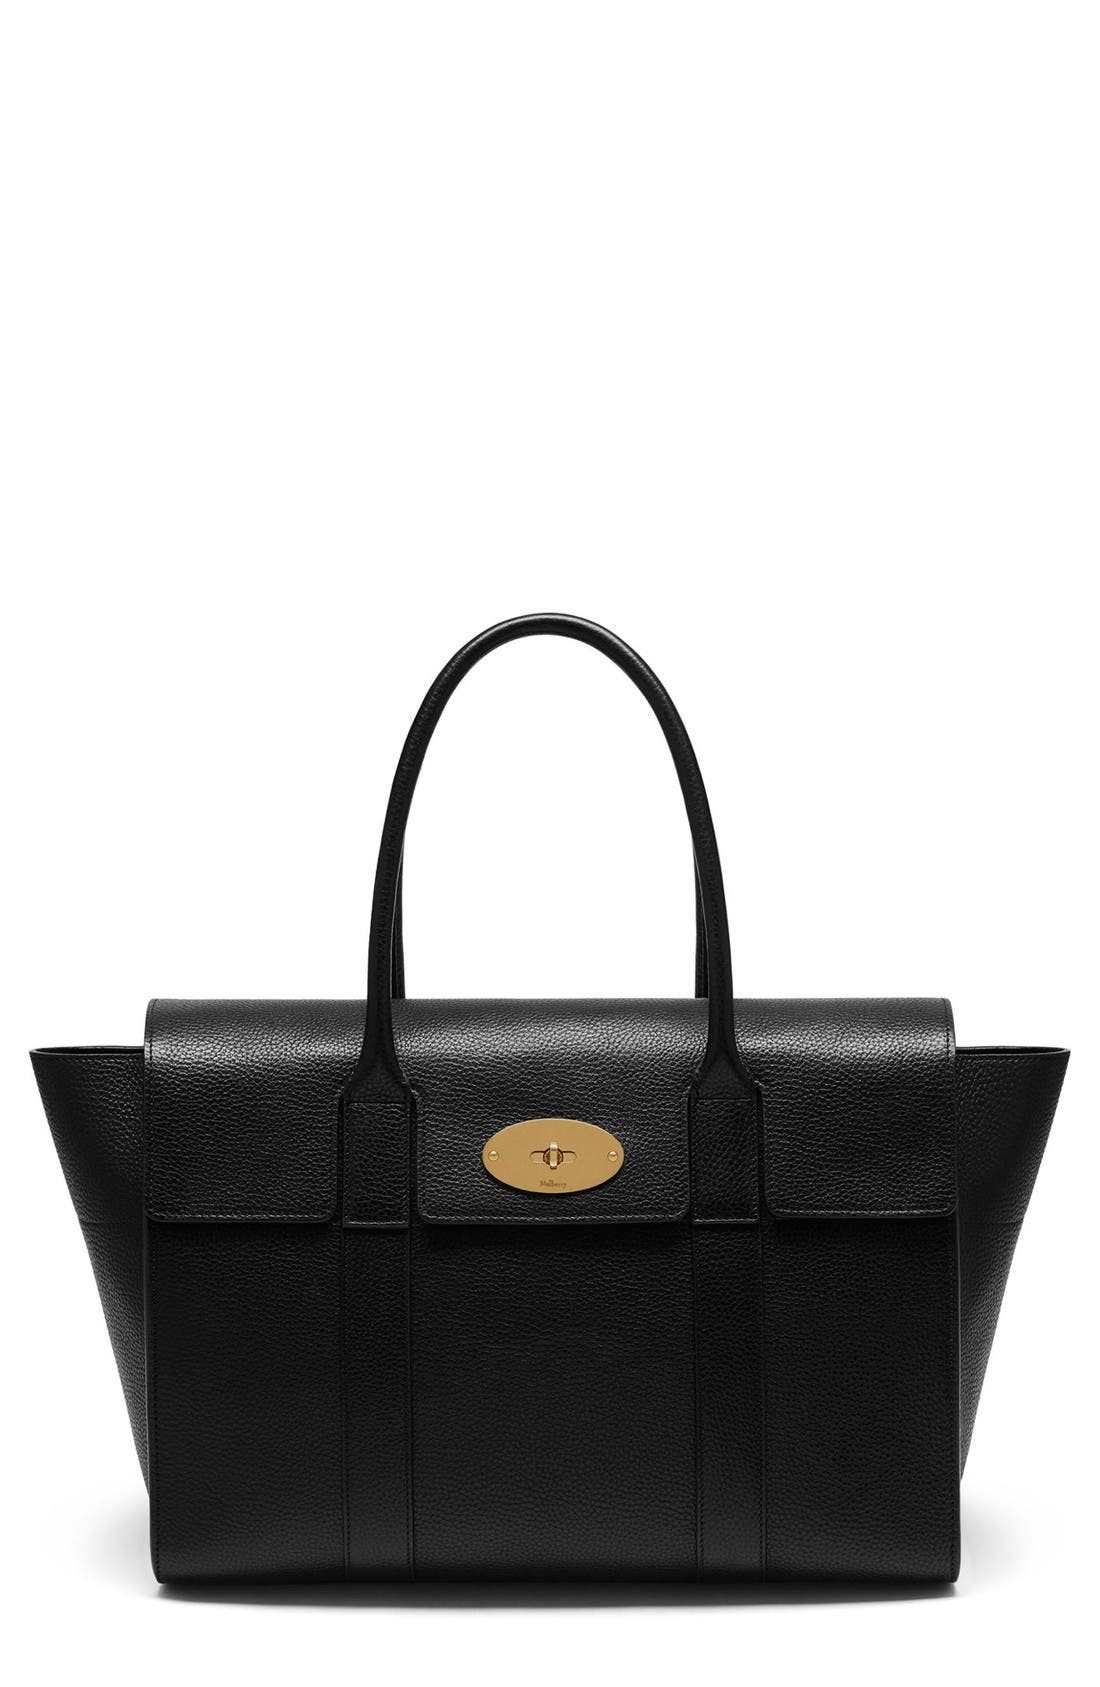 Mulberry New Bayswater Grained Leather Satchel